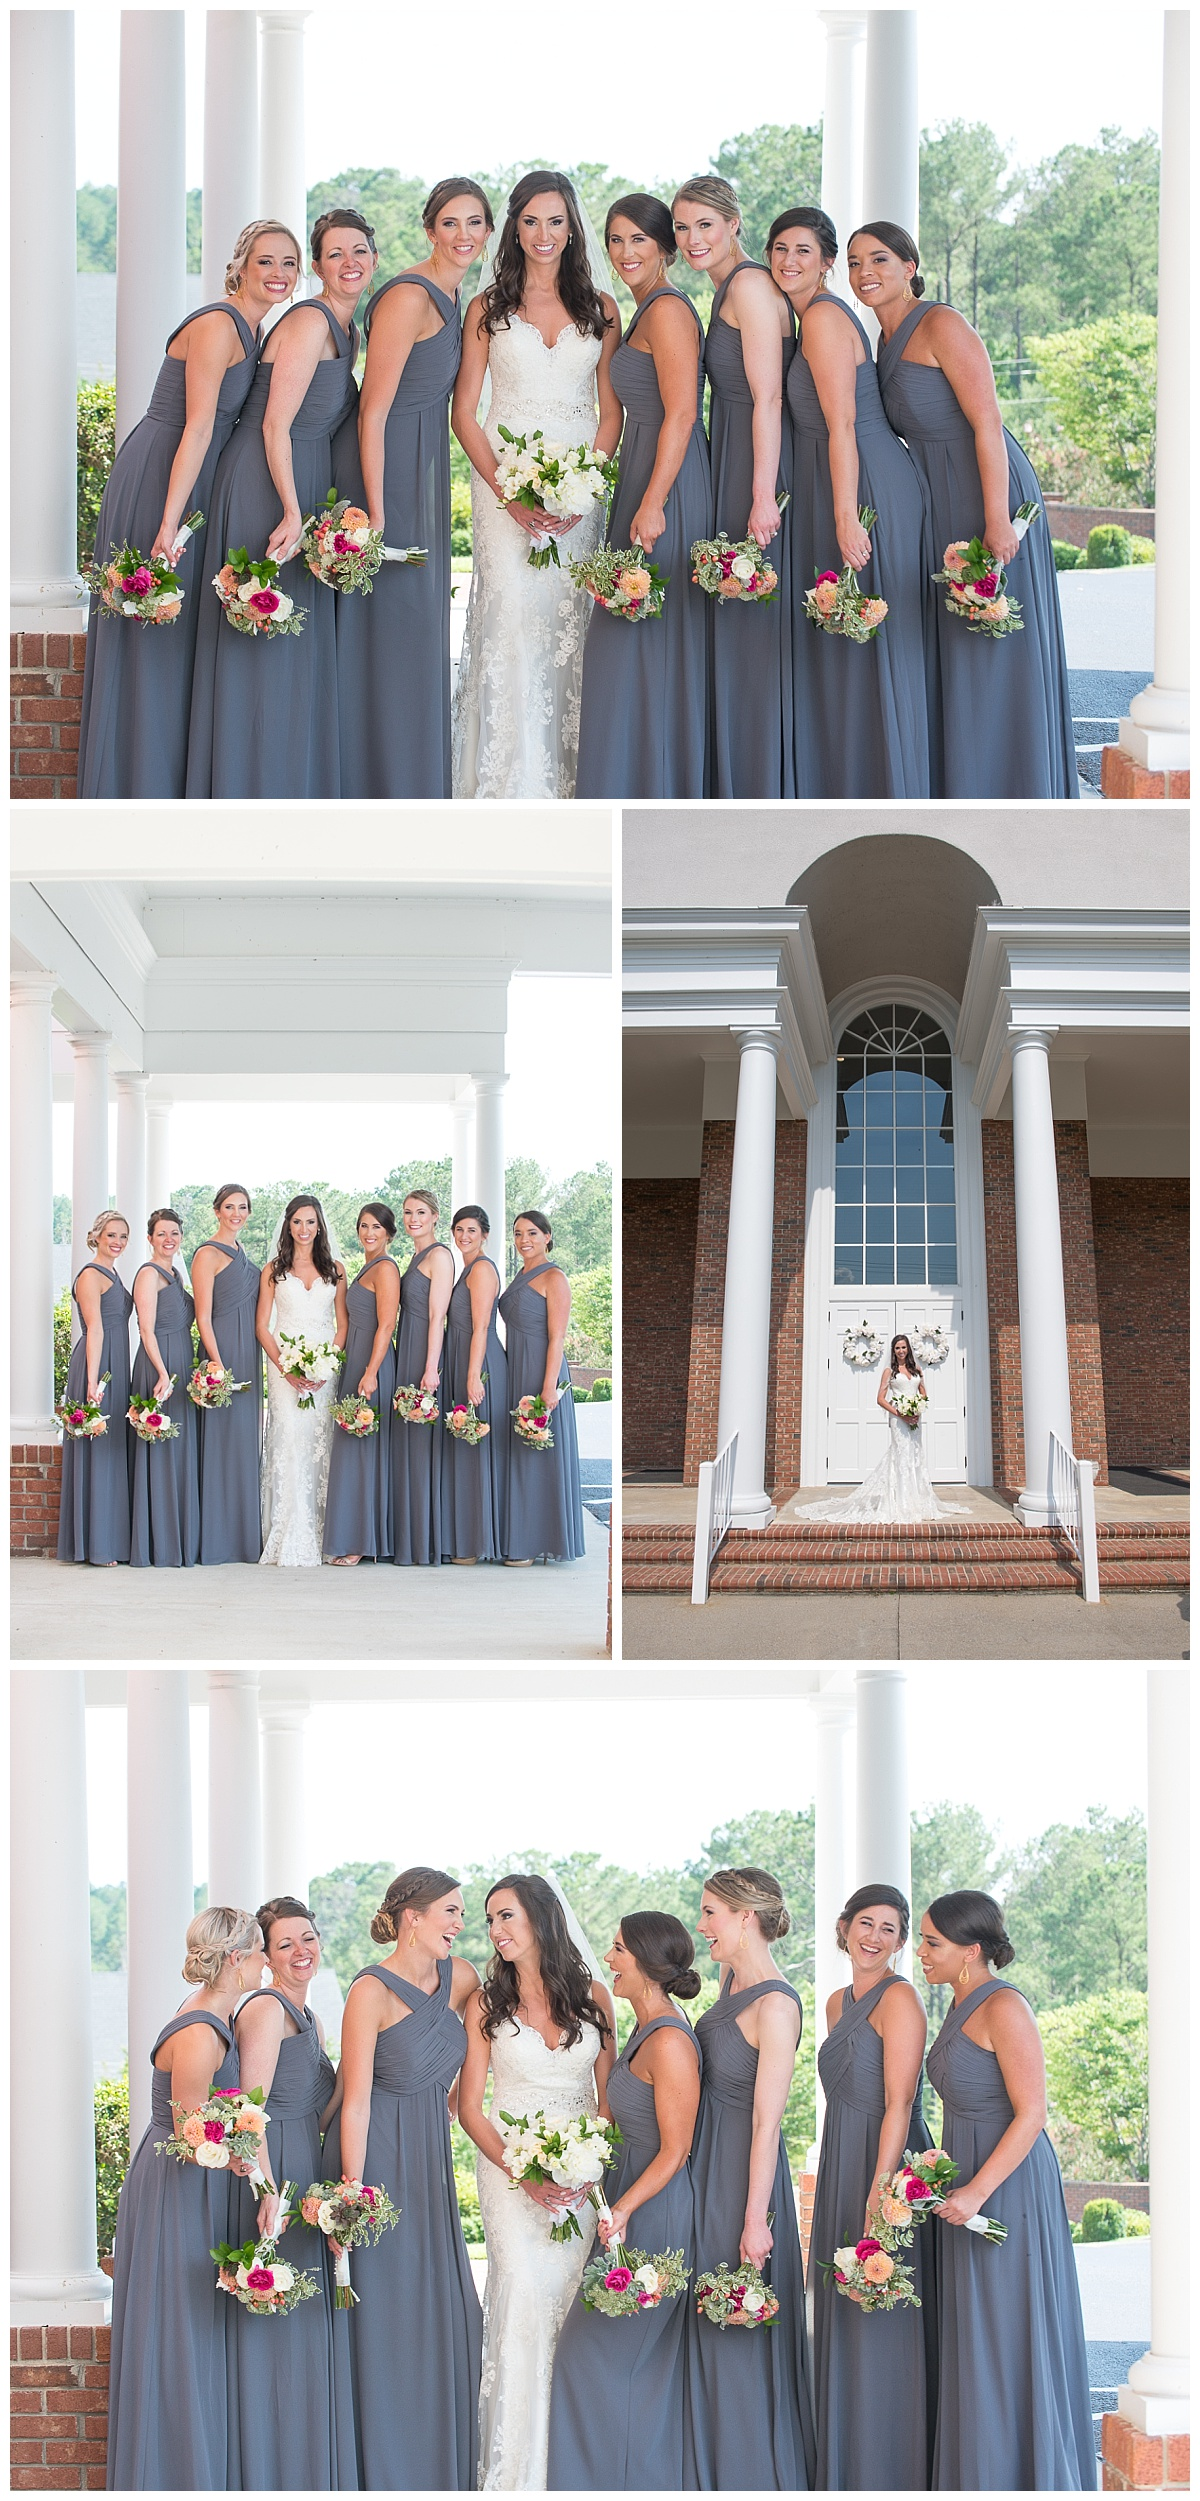 Bridesmaid photos in slate grey dresses